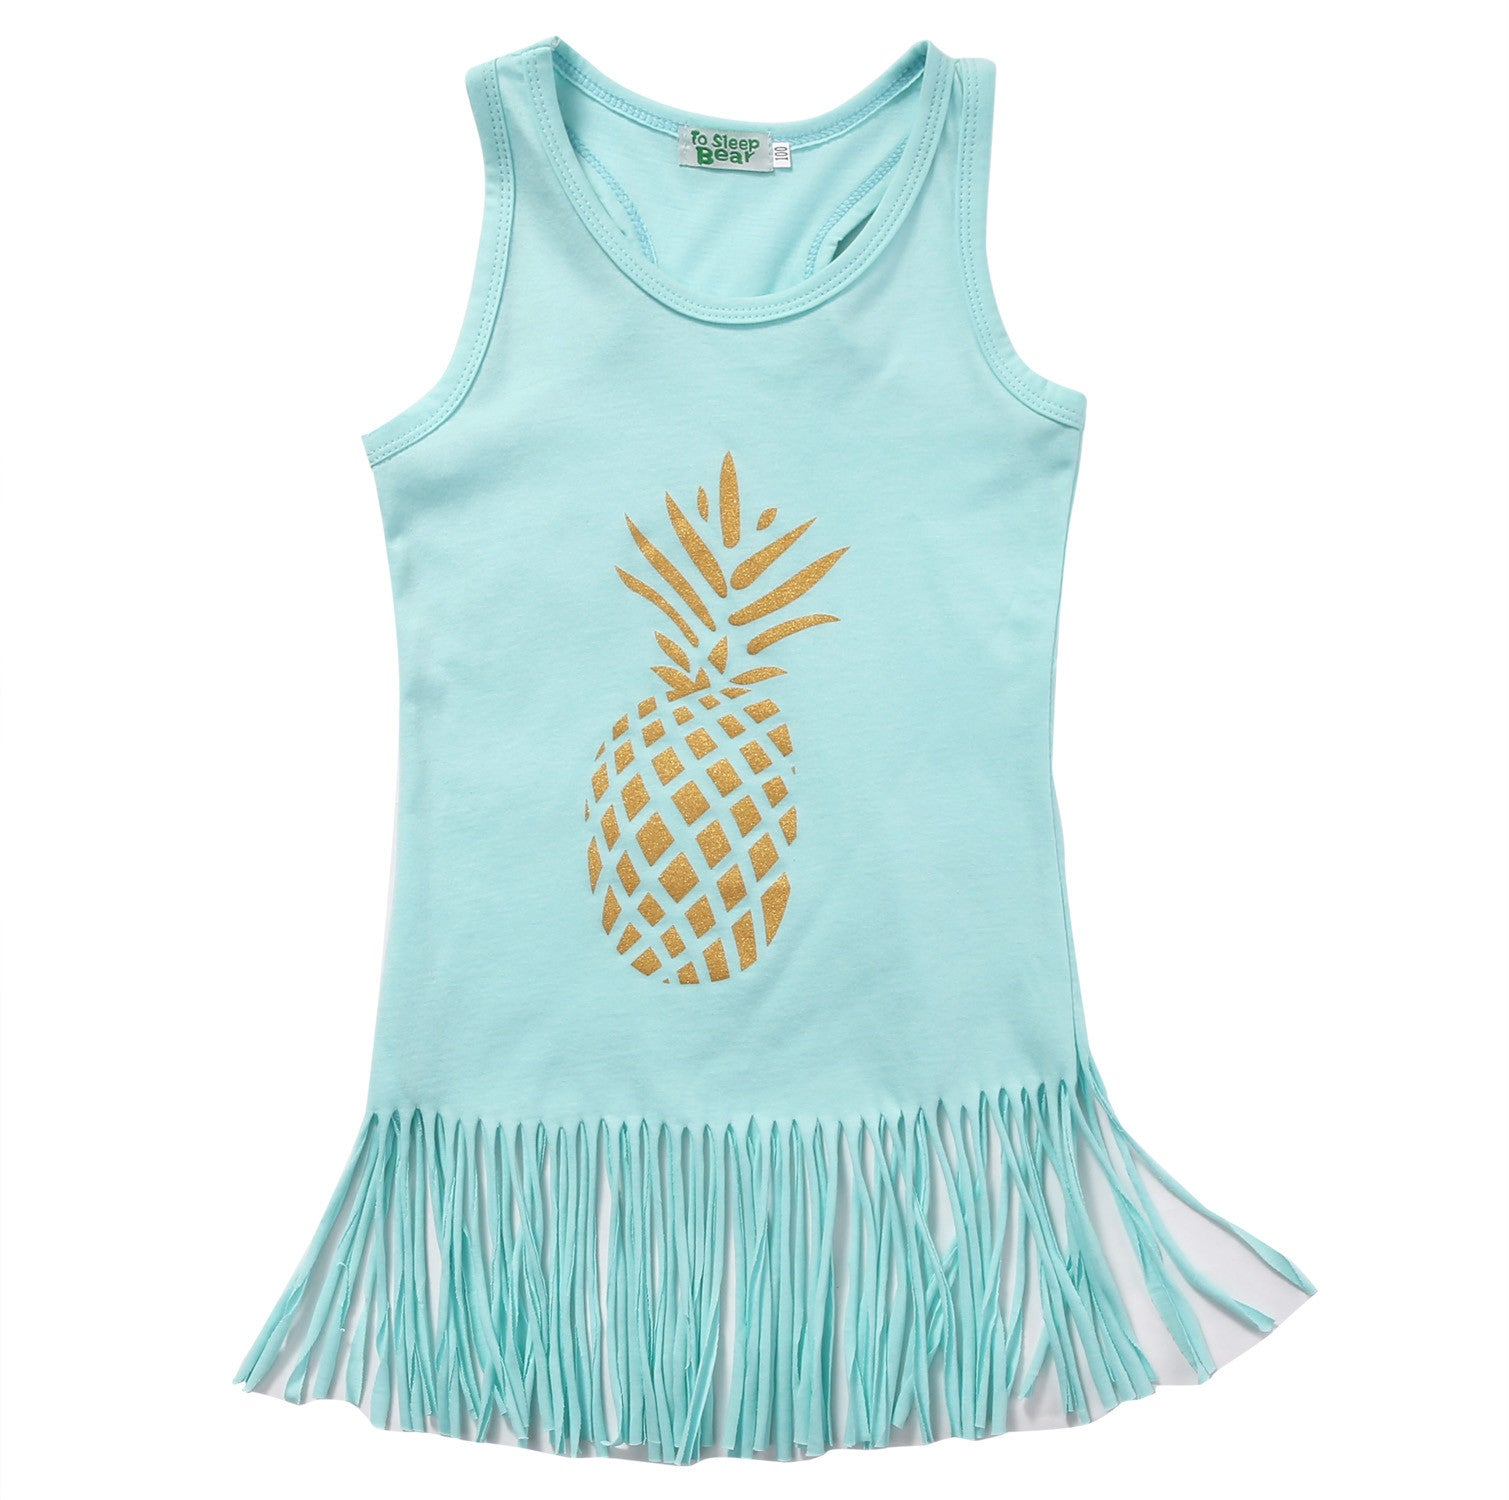 Blue Pineapple Dress - MunchkinGear.com